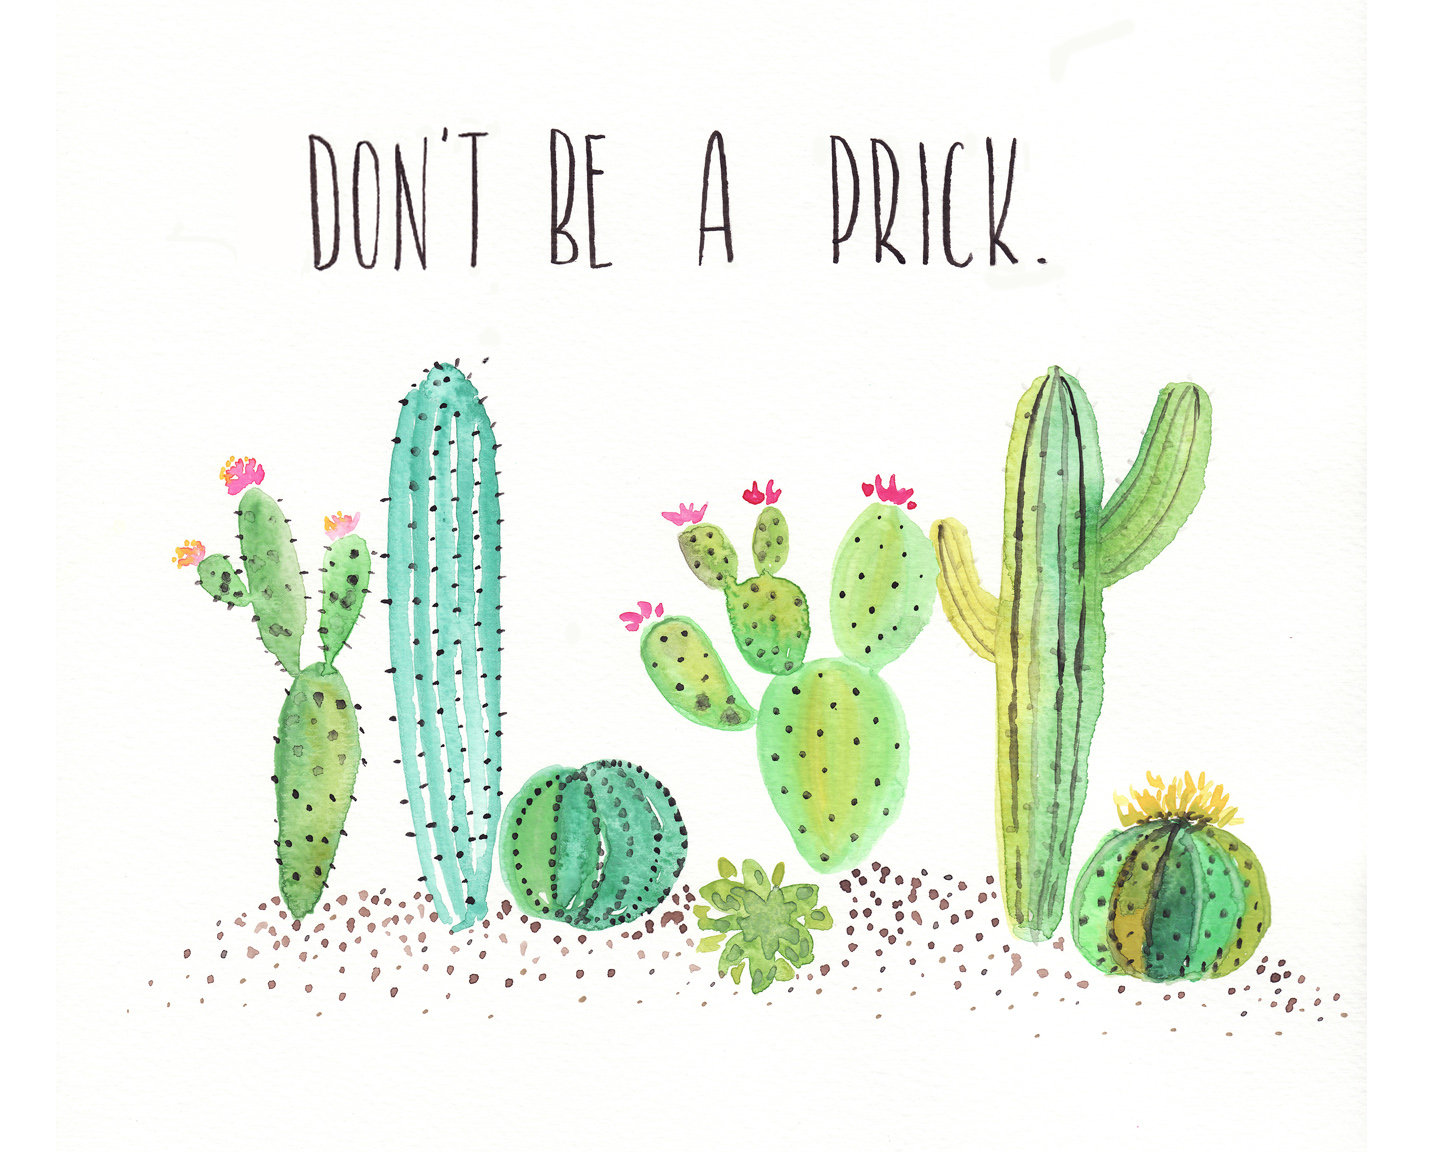 Free Watercolor Cactus Printable - One Project Closer - Free Printable Cactus